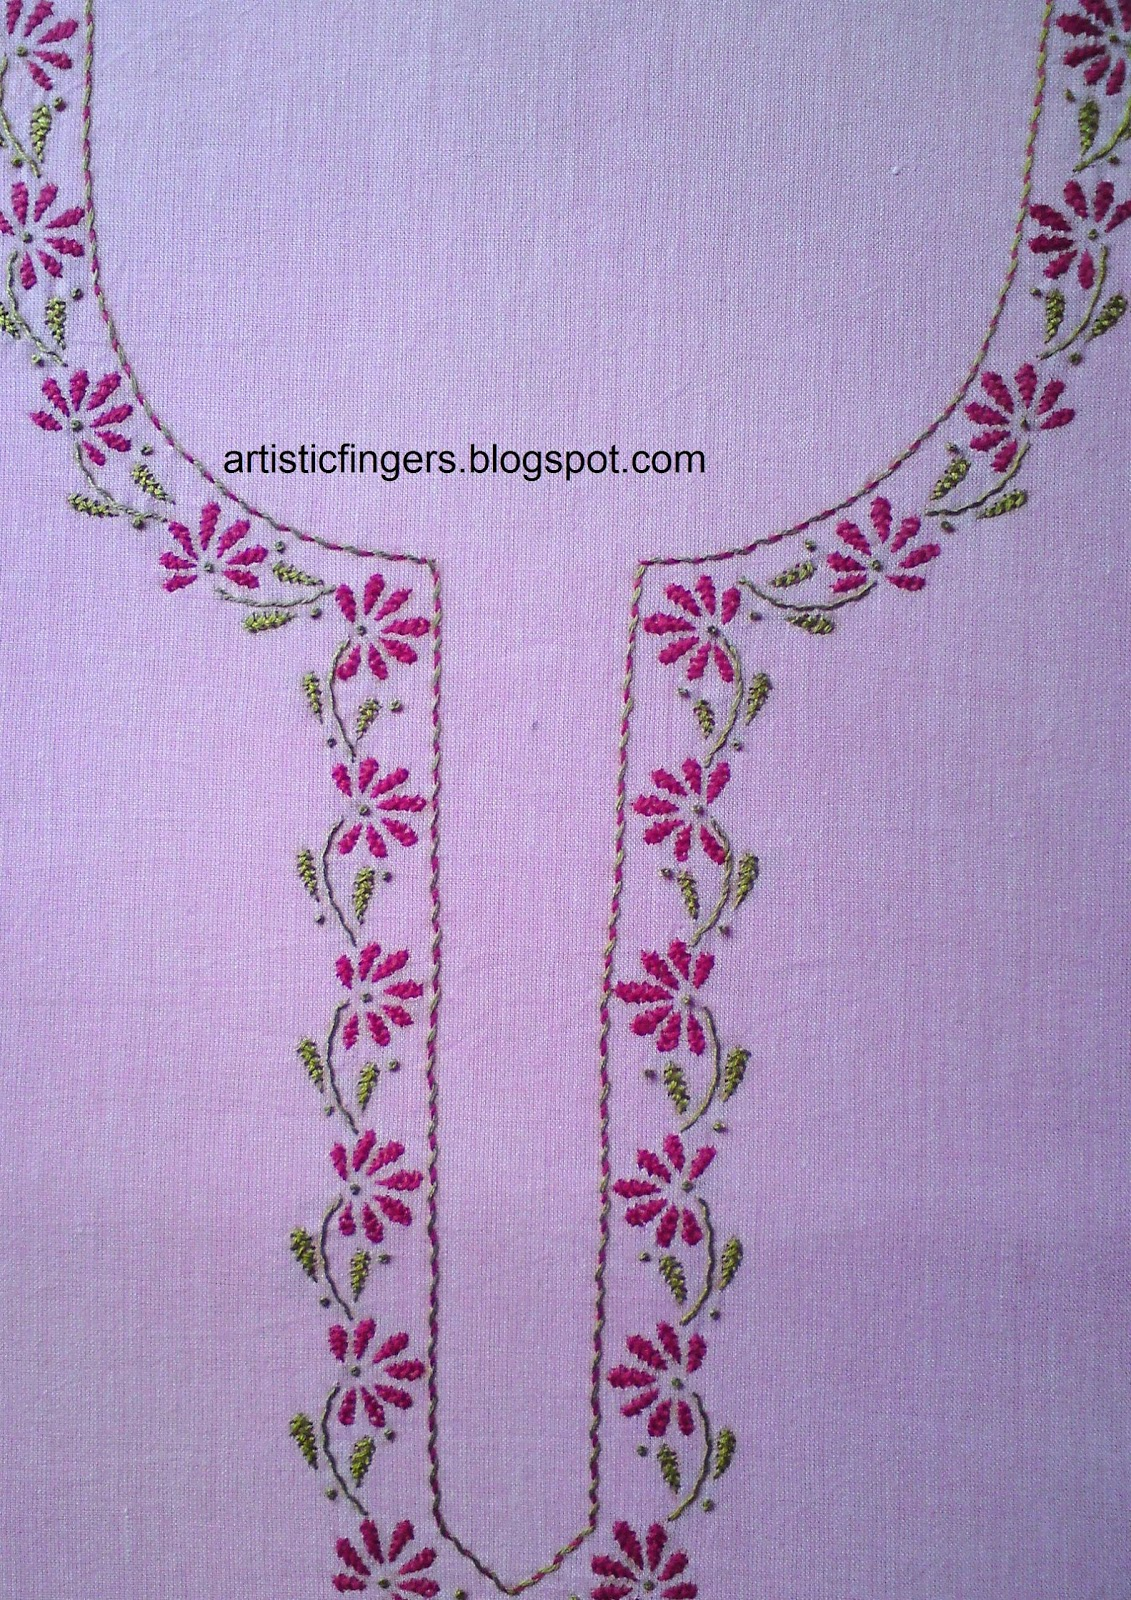 Artisticfingers surface embroidery free style